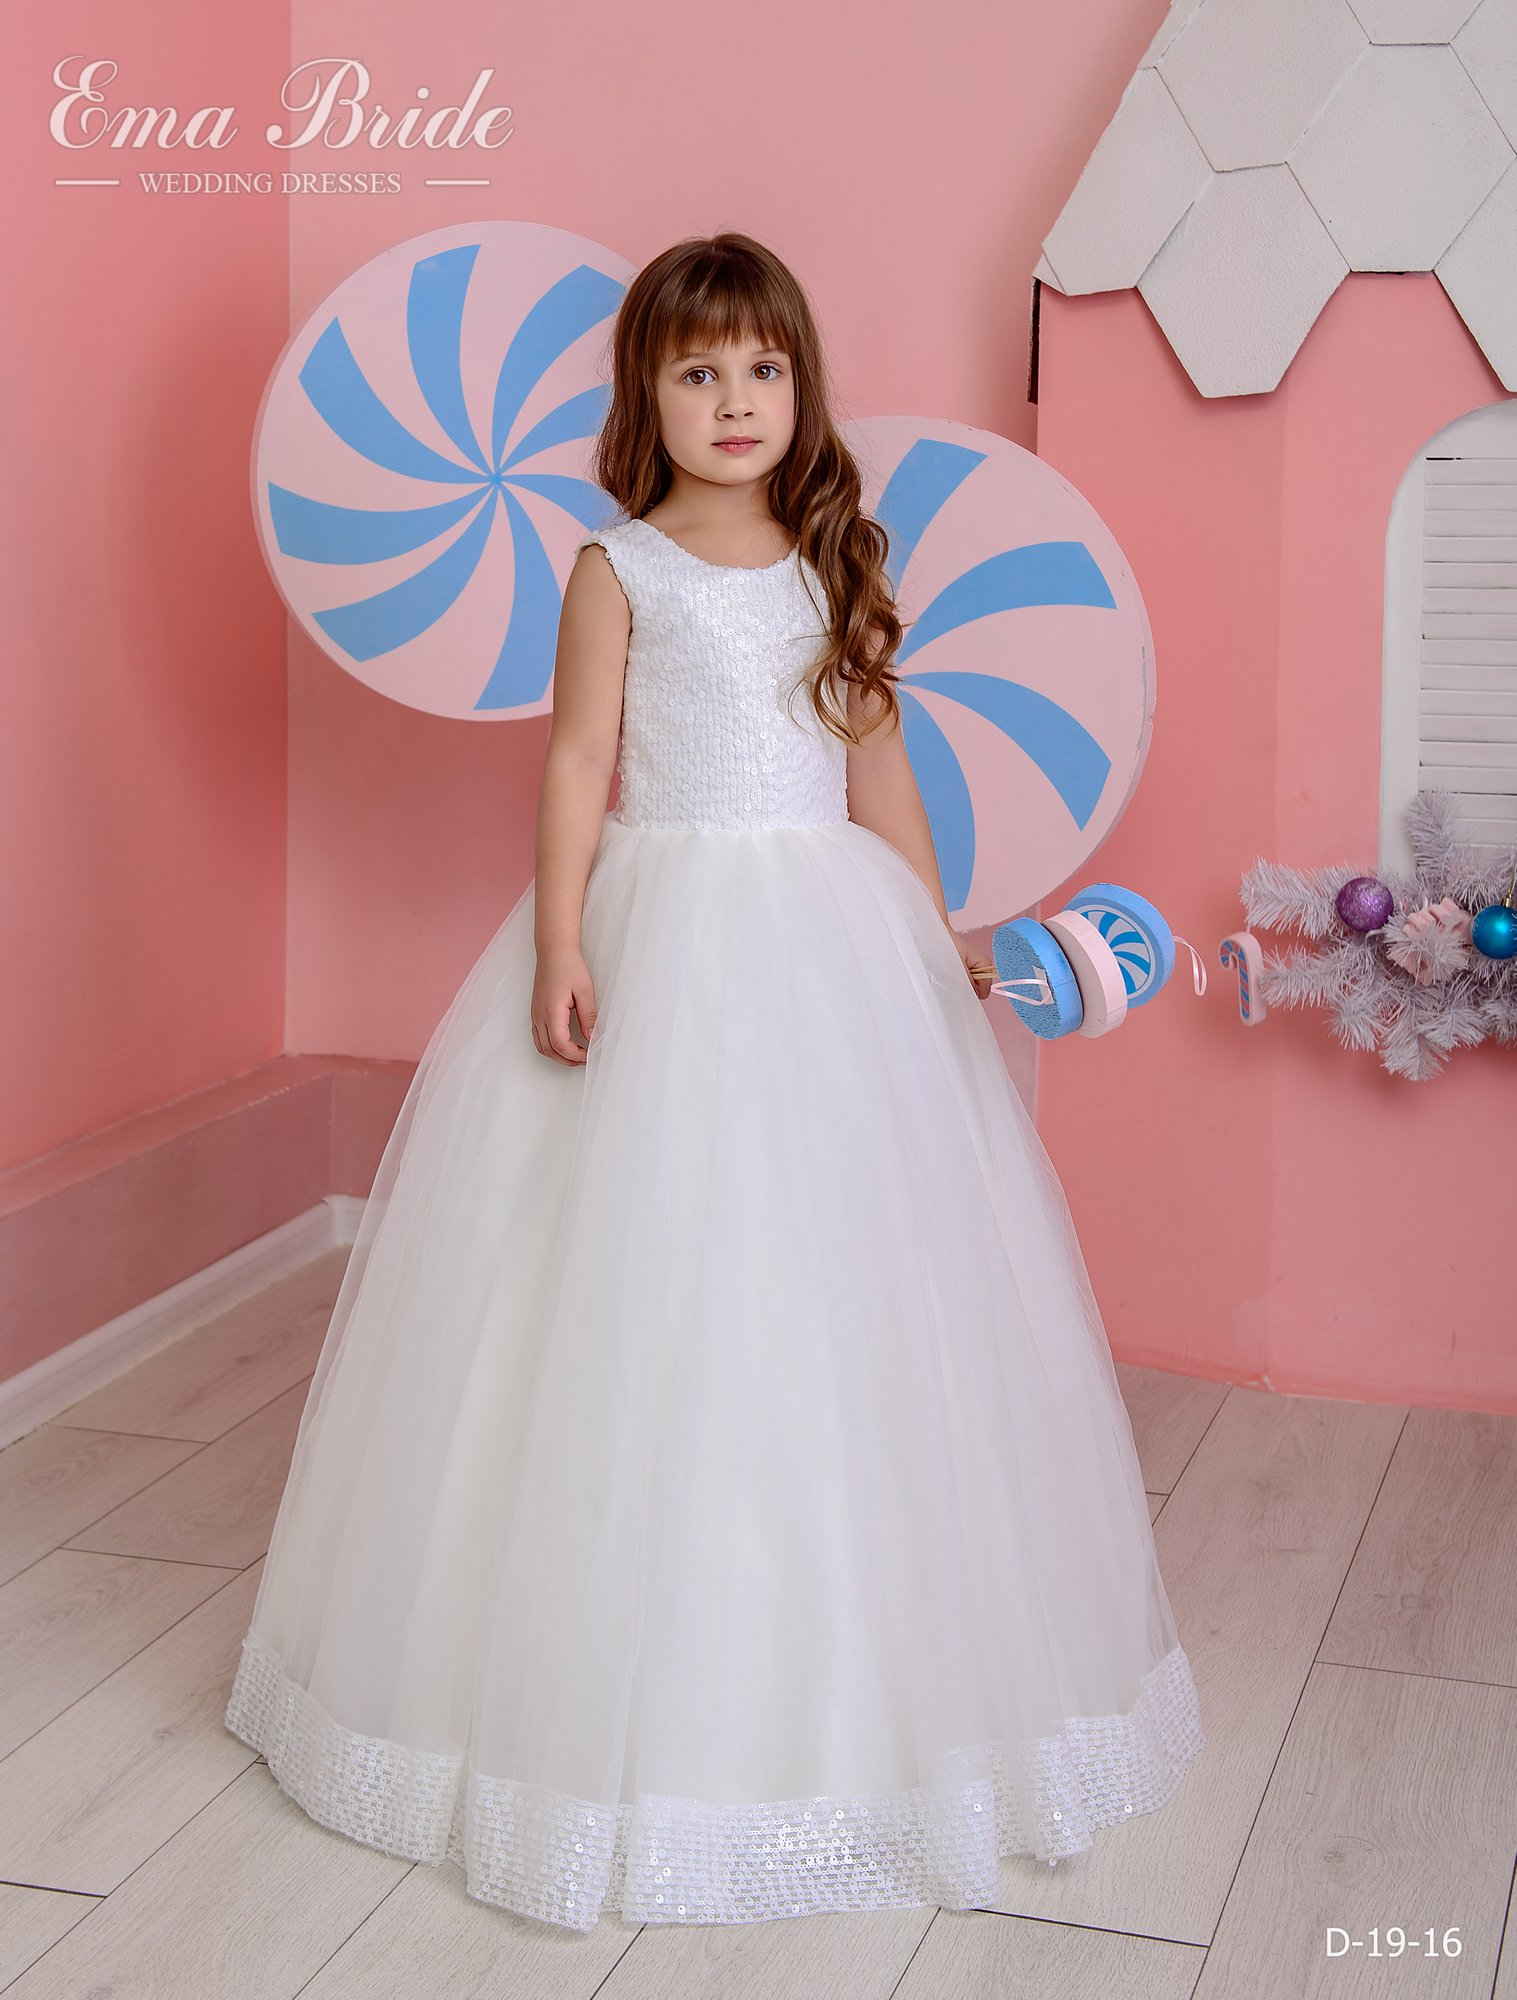 Children's dress by EmaBride D-19-16 2019